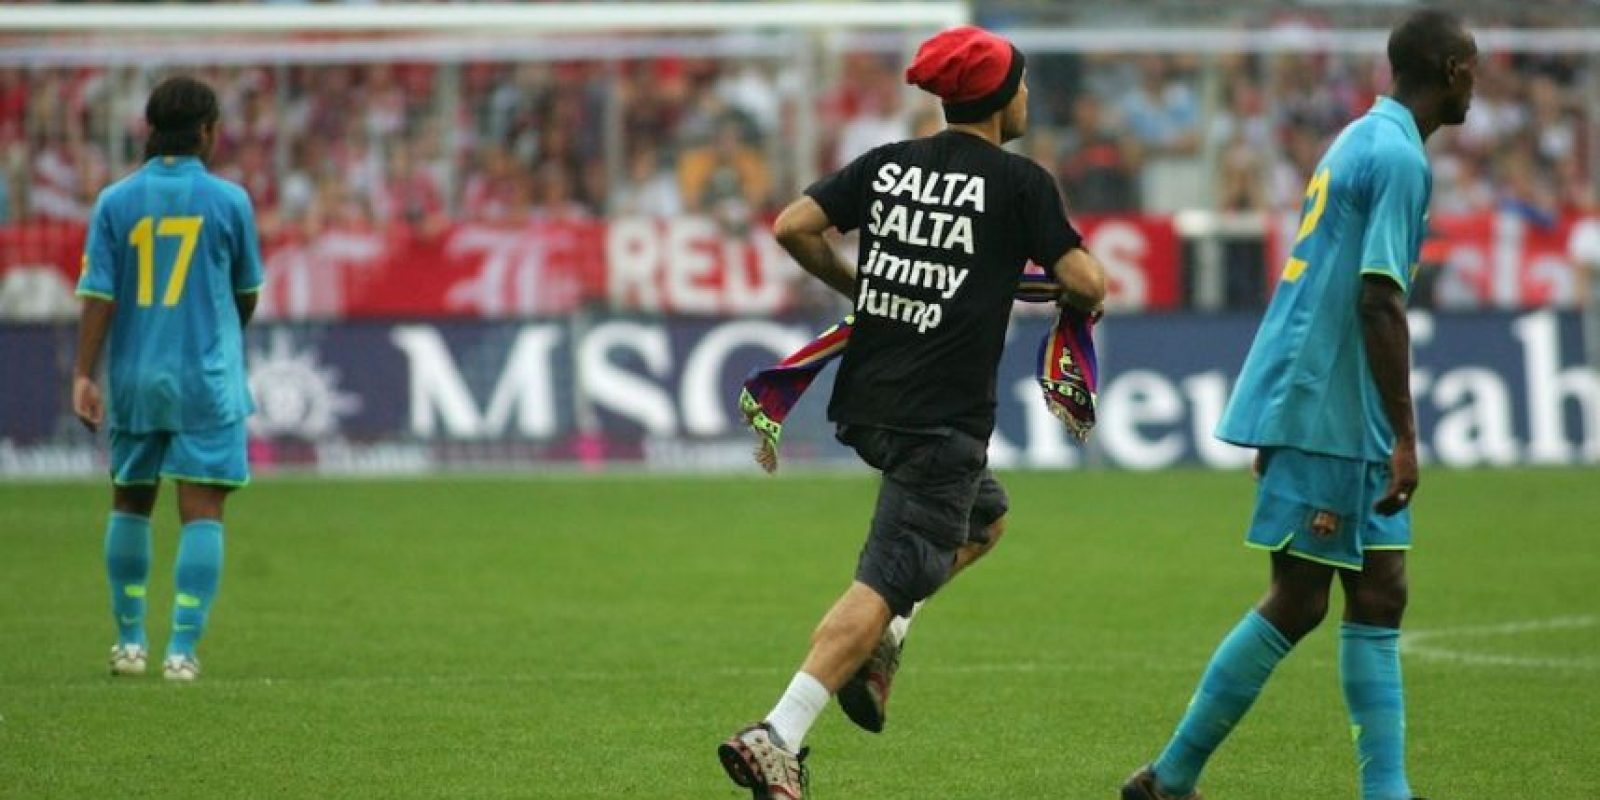 Jimmy de igual forma invadió en 2007 la cancha del Allianz Arena de Múnich, Alemania. Foto: Getty Images